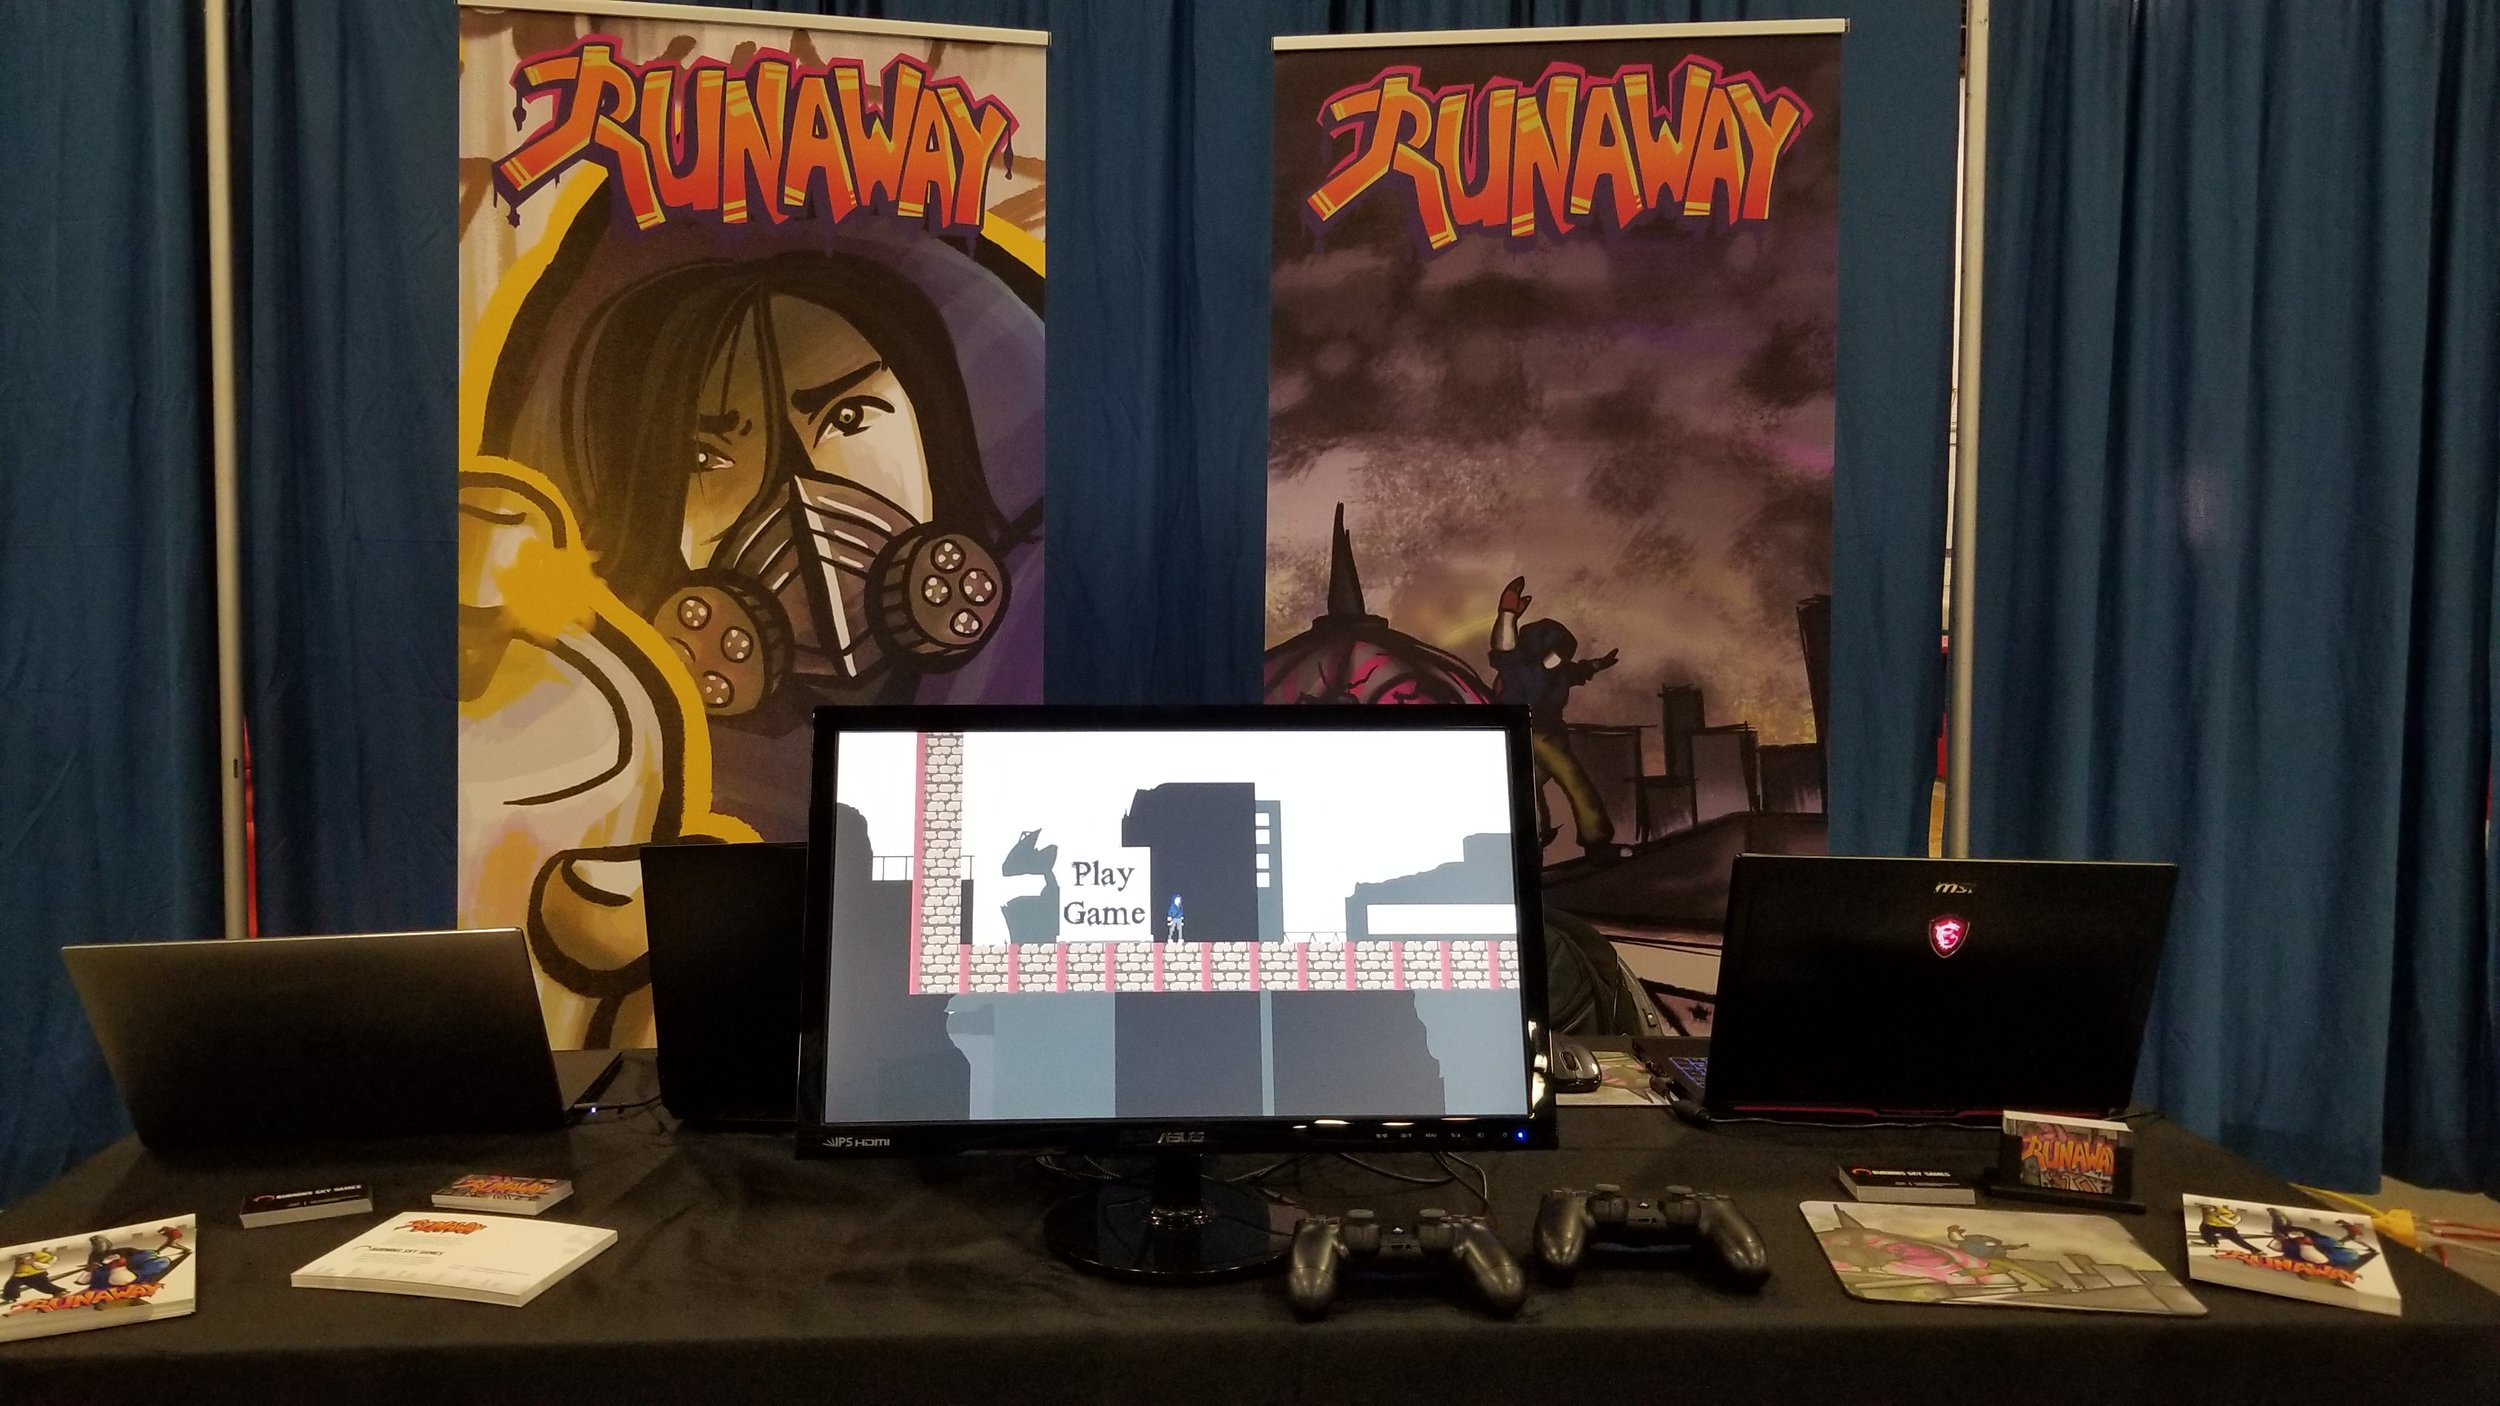 Our booth setup at BostonFIG 2018